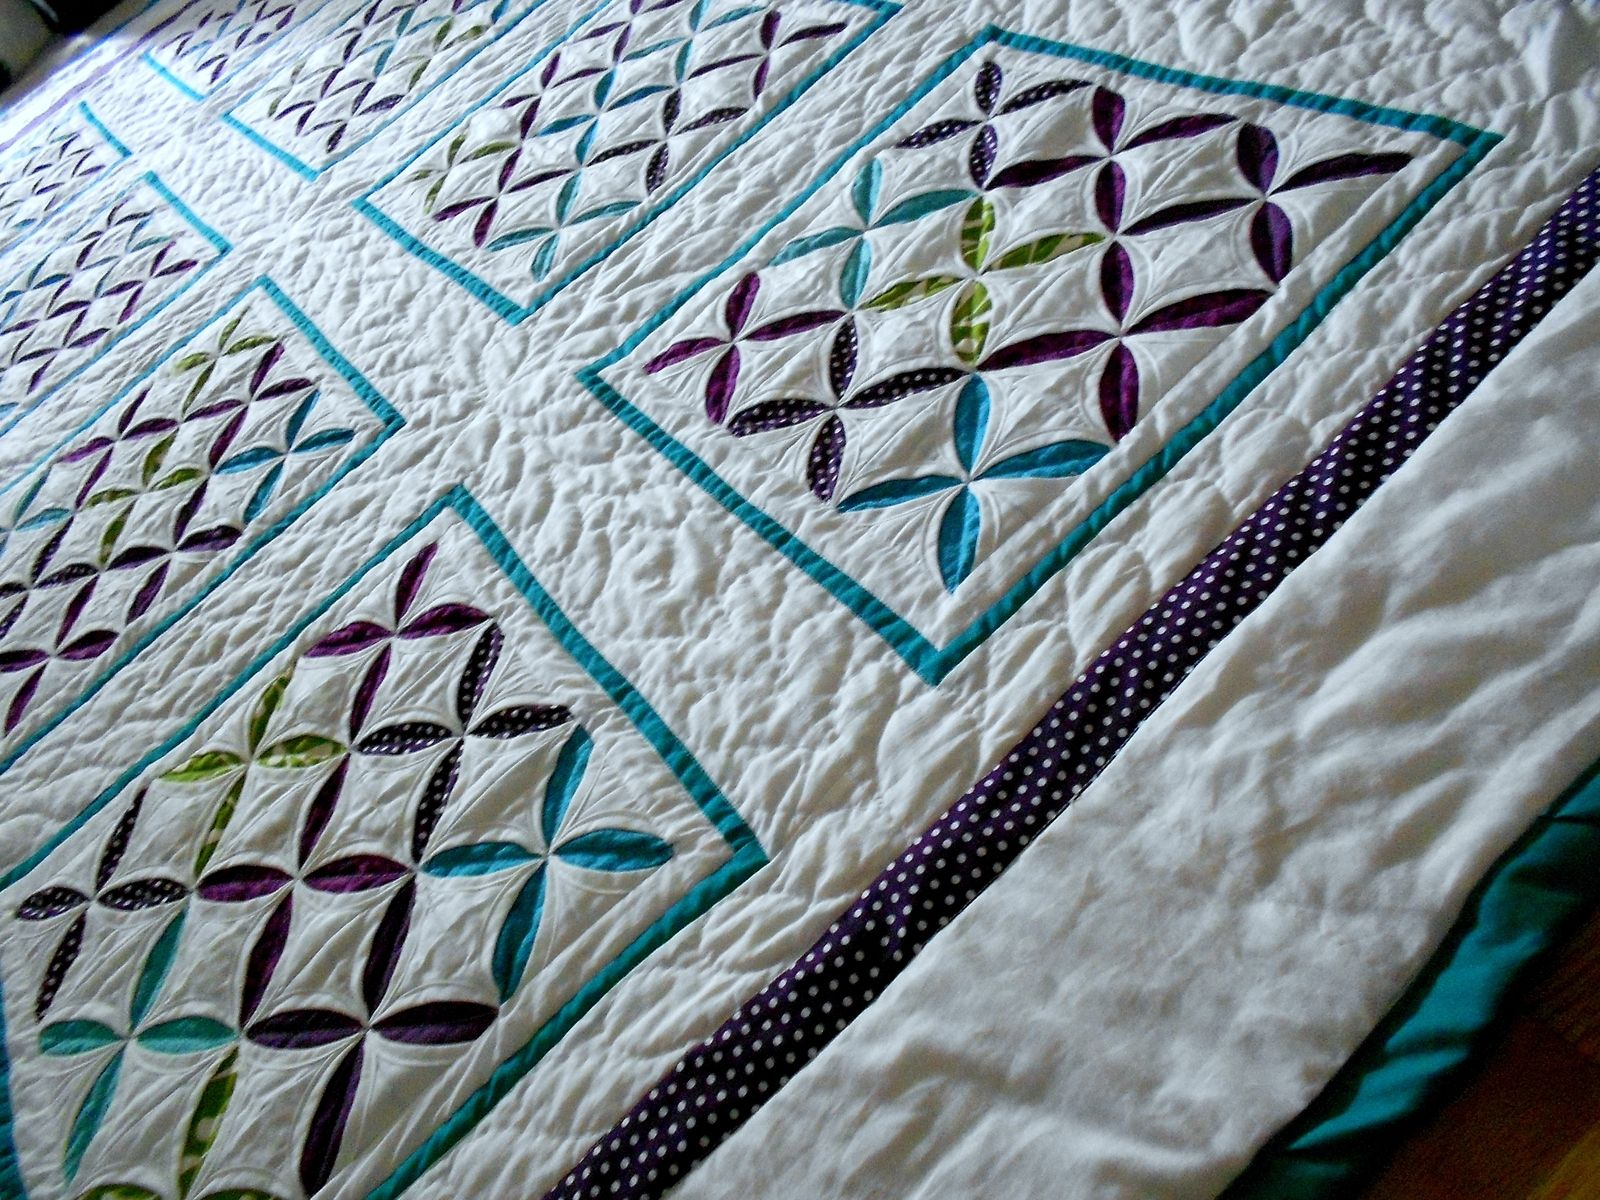 Hand Crafted Reverse Cathedral Windows Quilt by Katie Sews 4 U ... : cathedral window quilting - Adamdwight.com